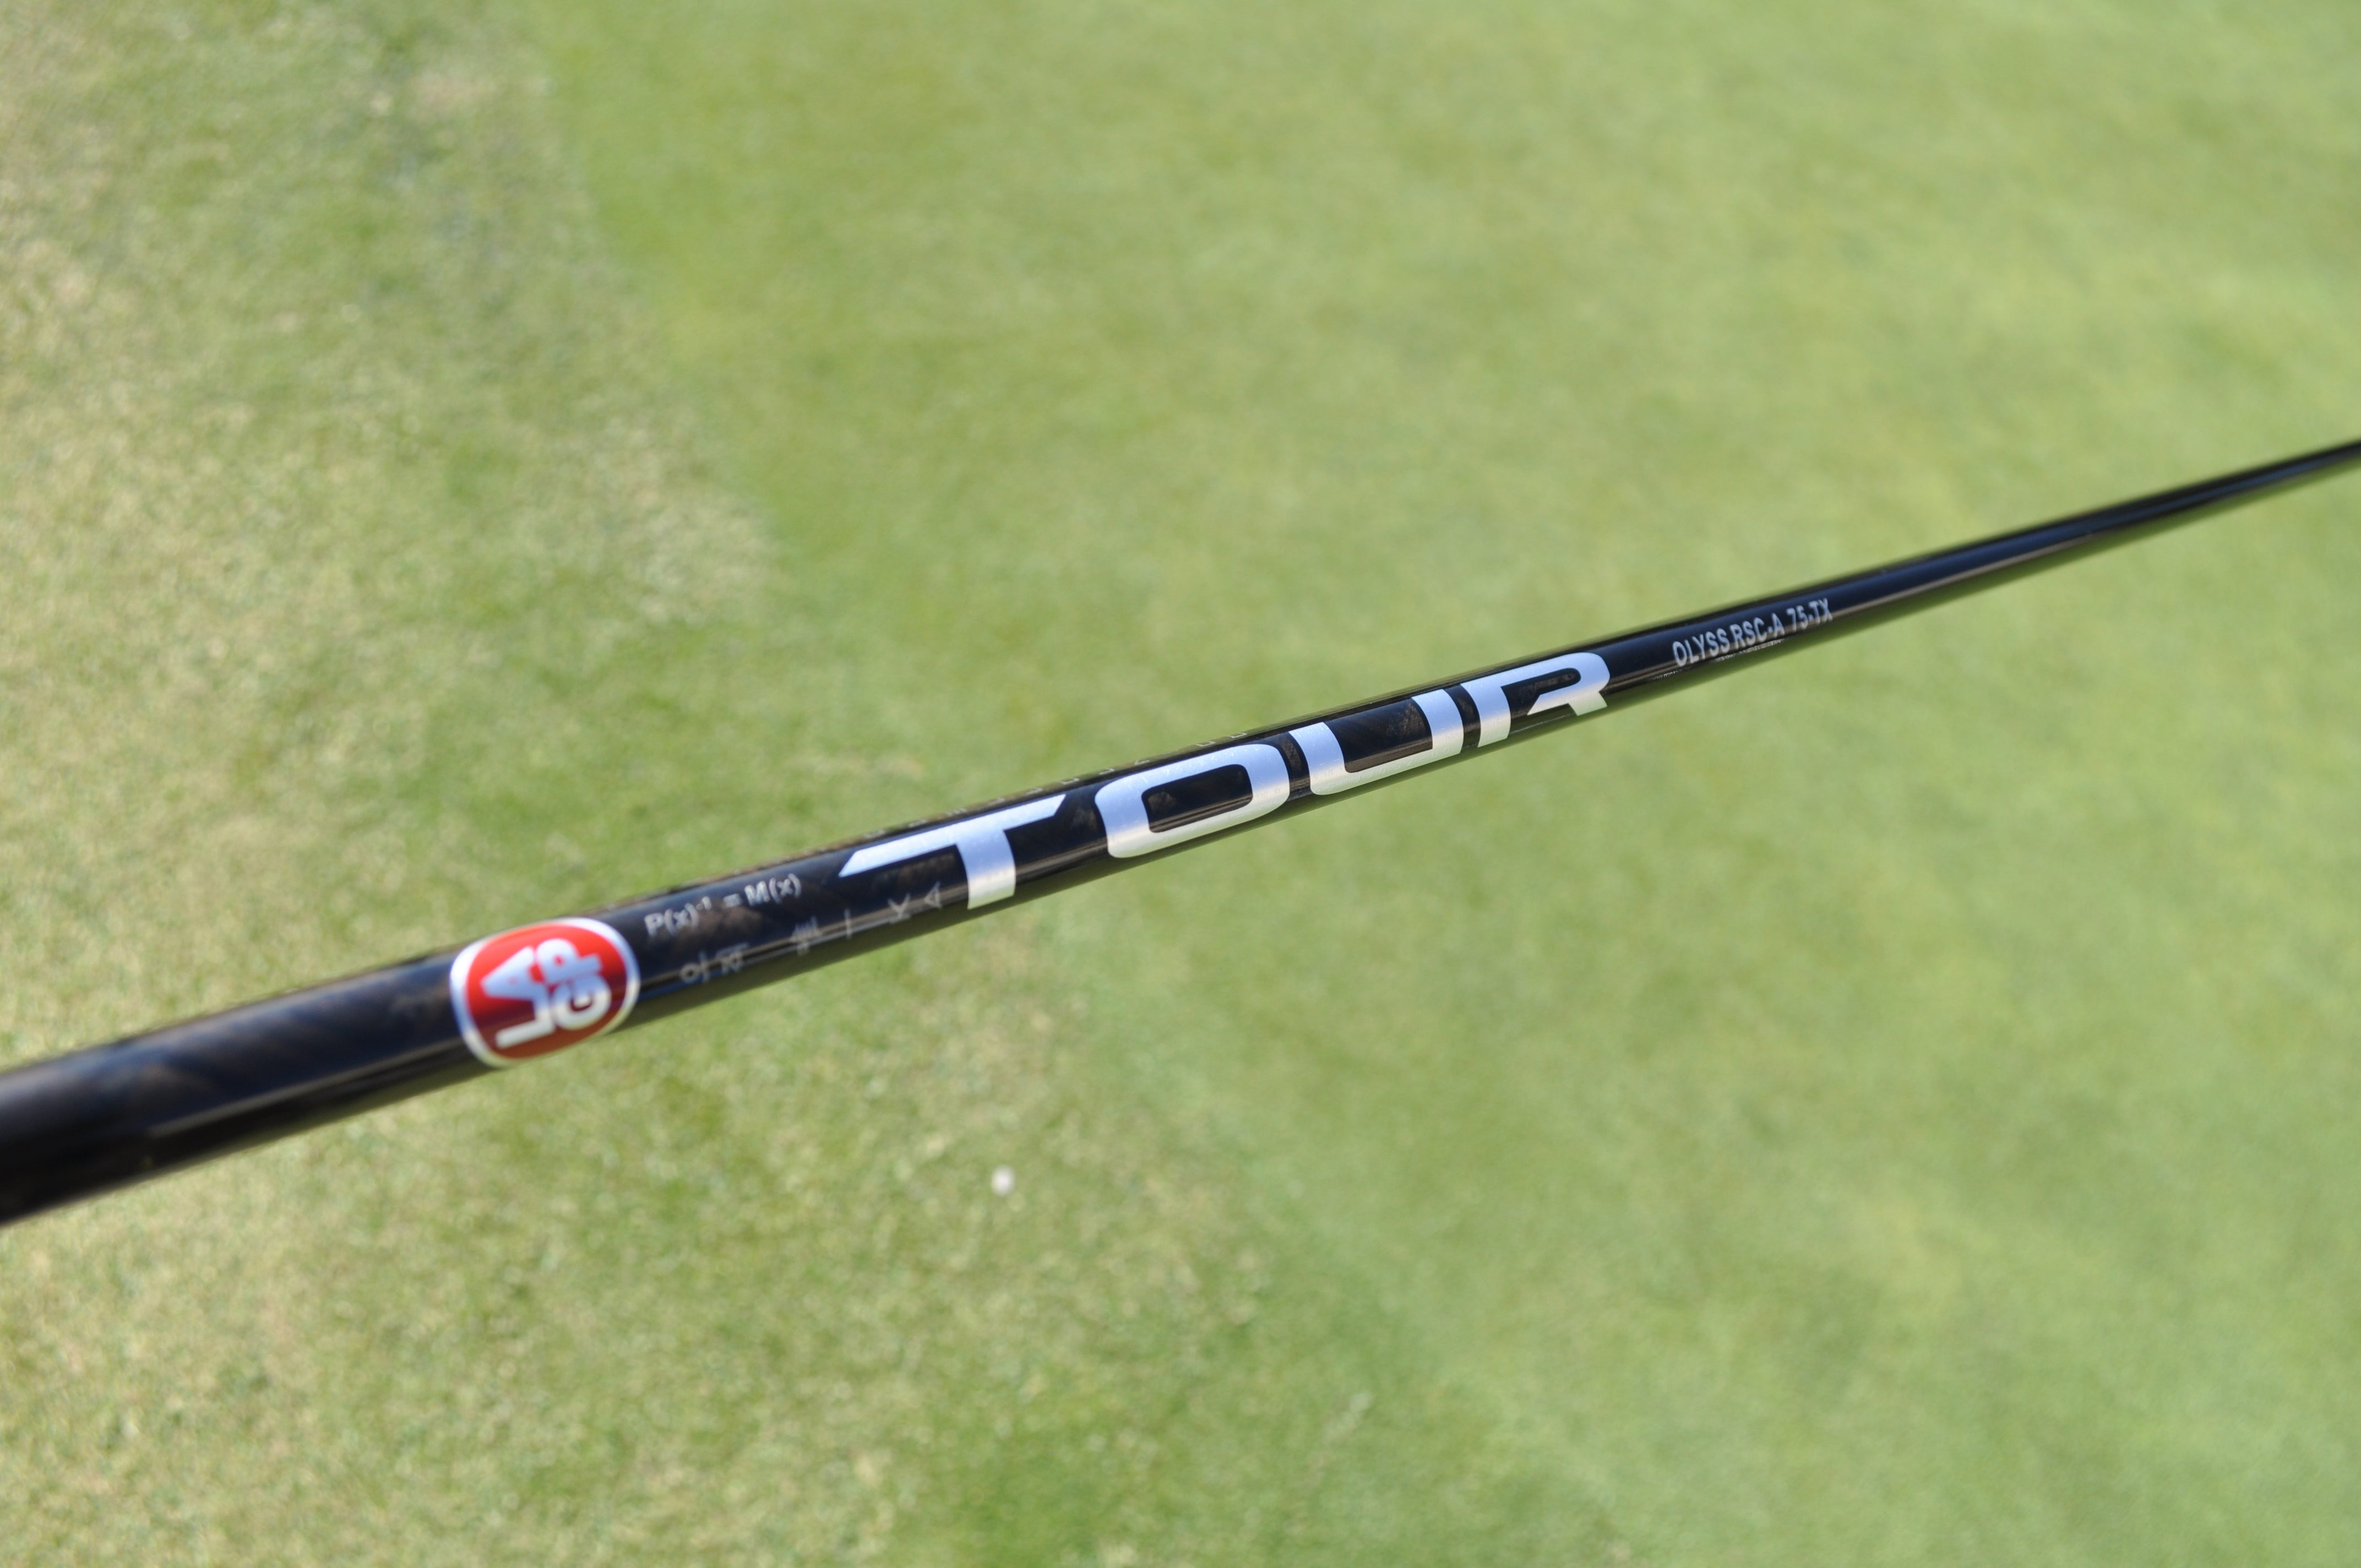 LA Golf's new OLYSS prototype driver shaft offers a low-mid ball flight with low spin.